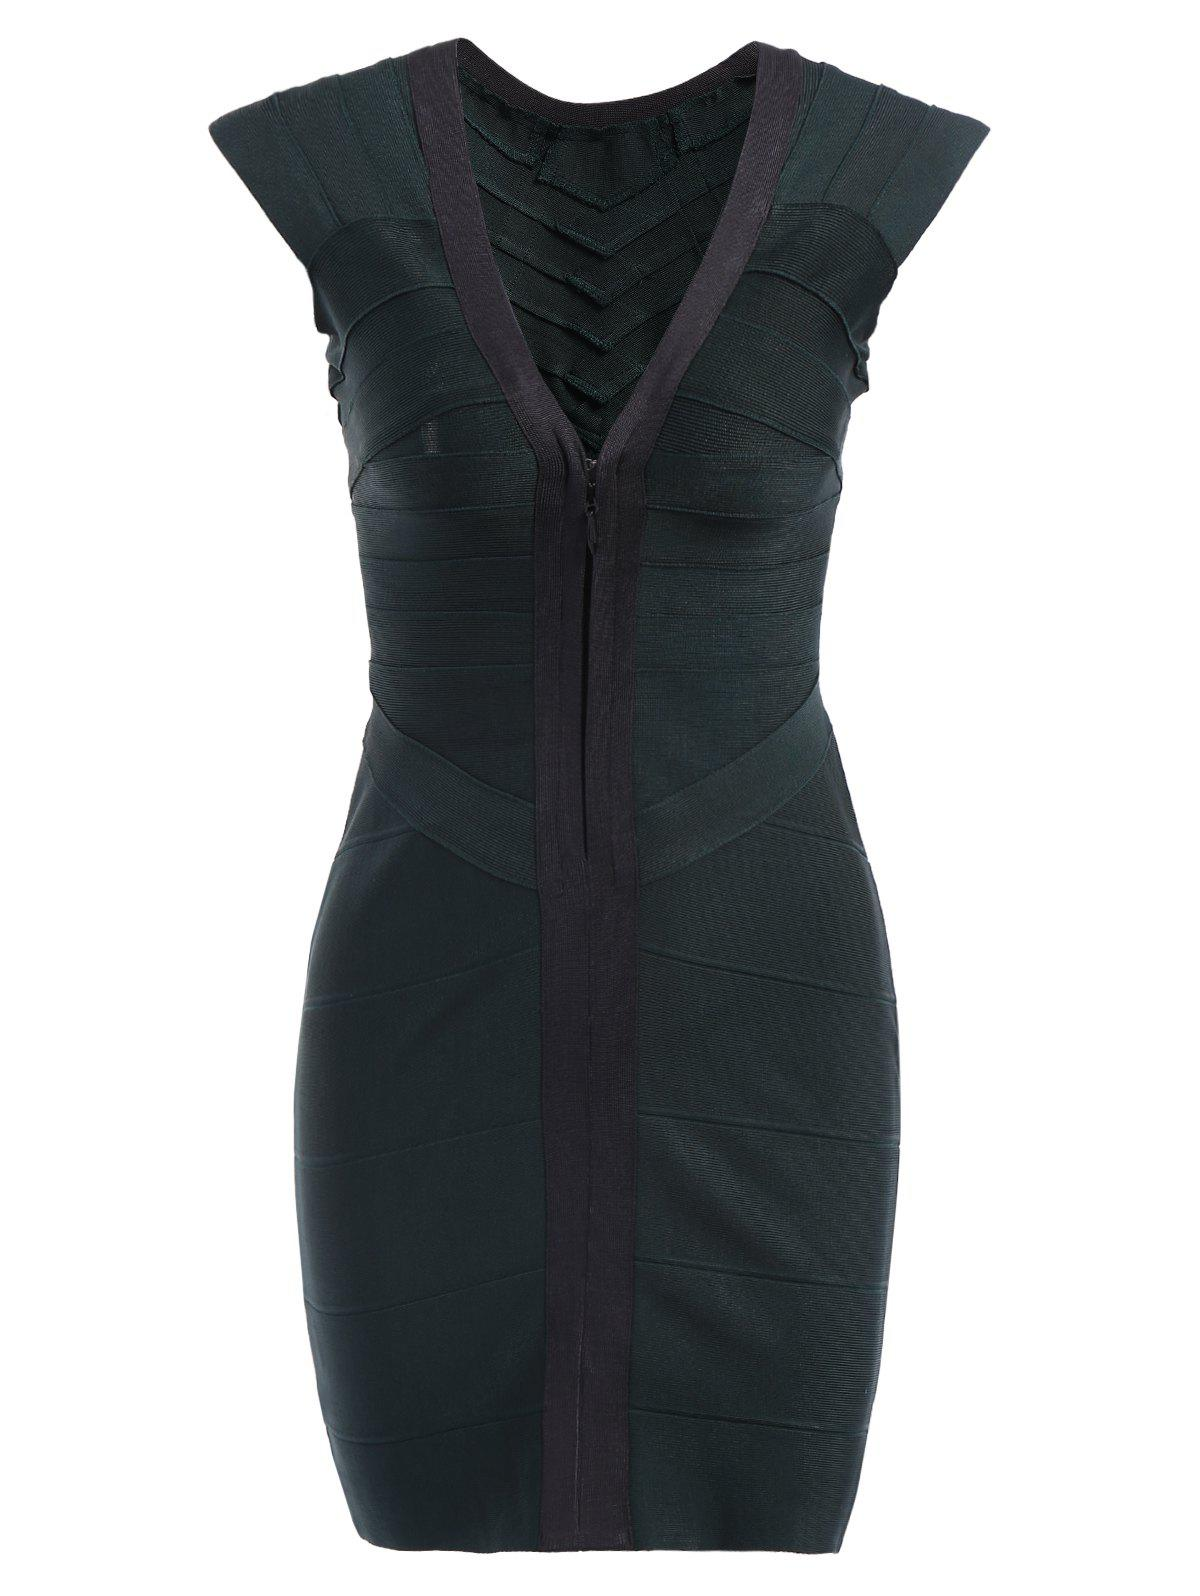 Women's Charming Color Splicing Zipper Front Low-Cut Slimming Bandage Dress